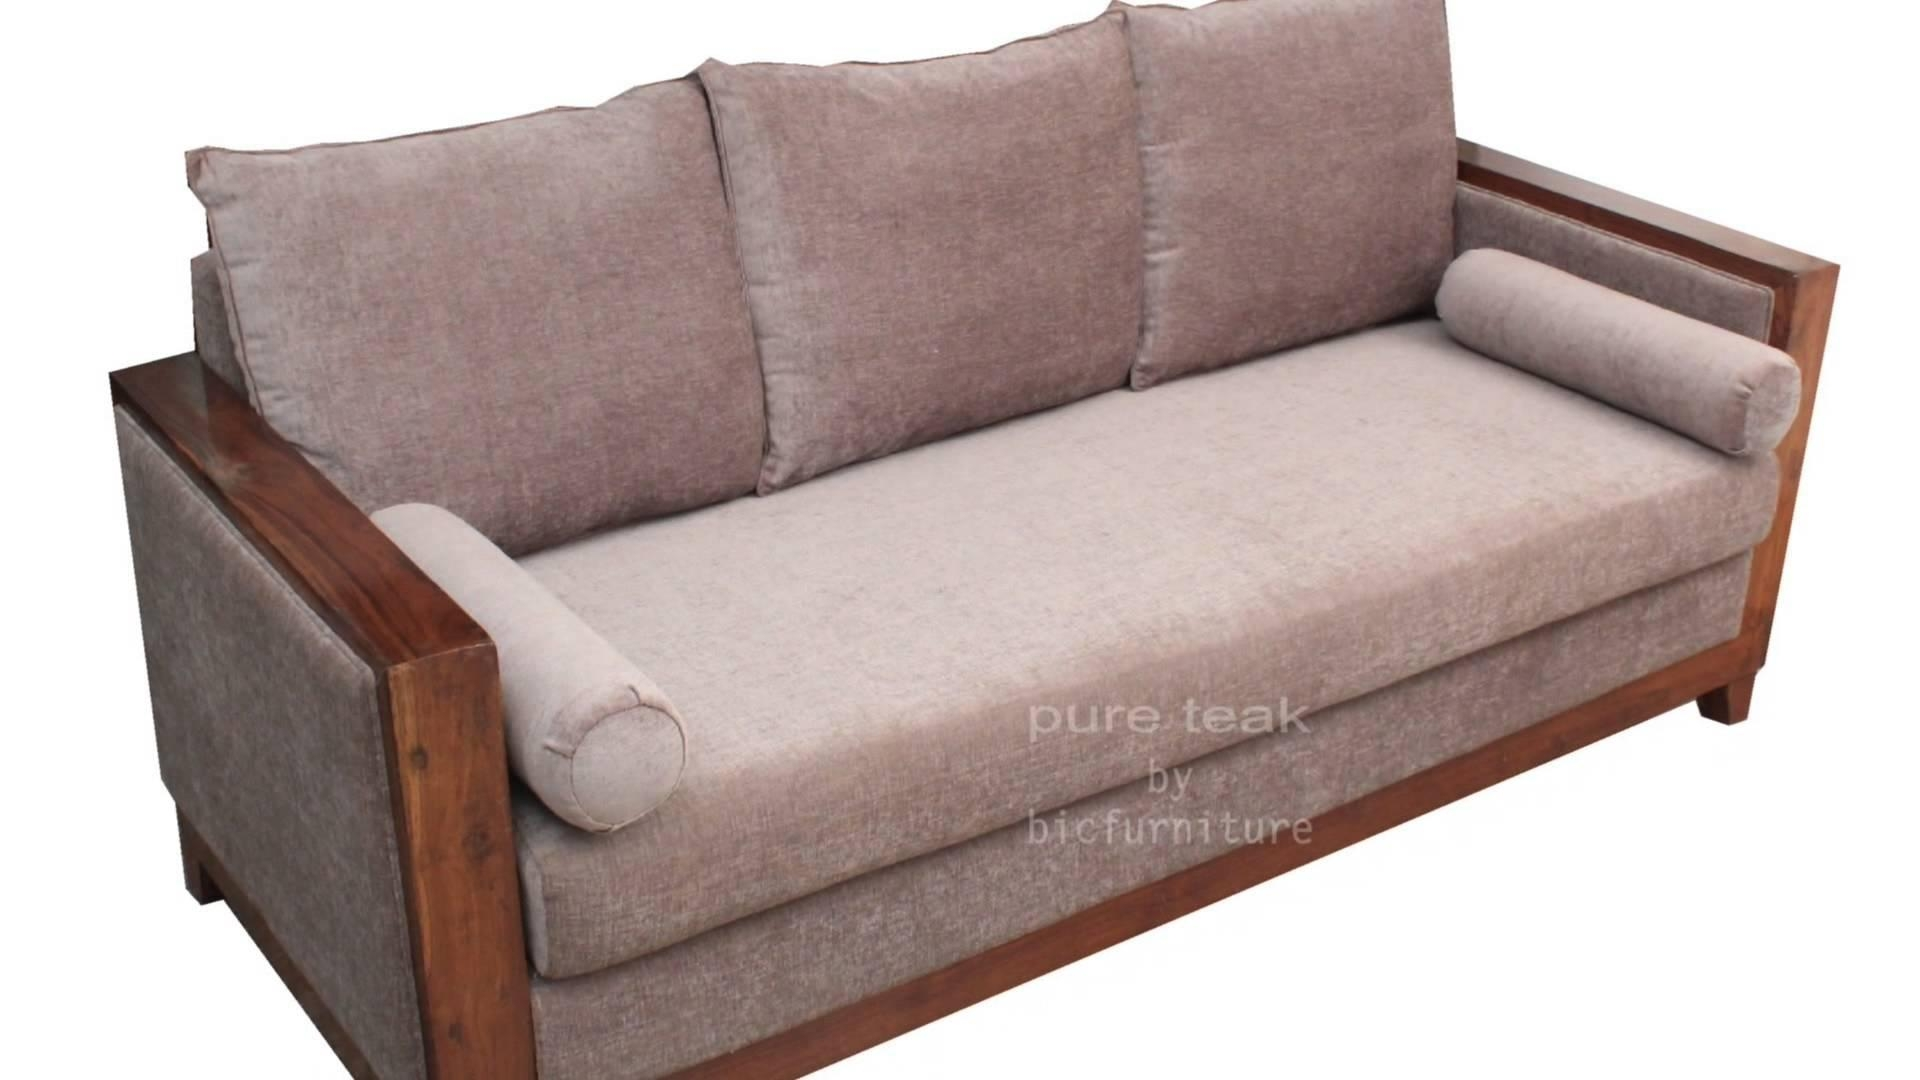 Teak Wood Sofa Set For Living Room With Comfortable Angles | Visit Within Comfortable Sofas And Chairs (View 4 of 20)